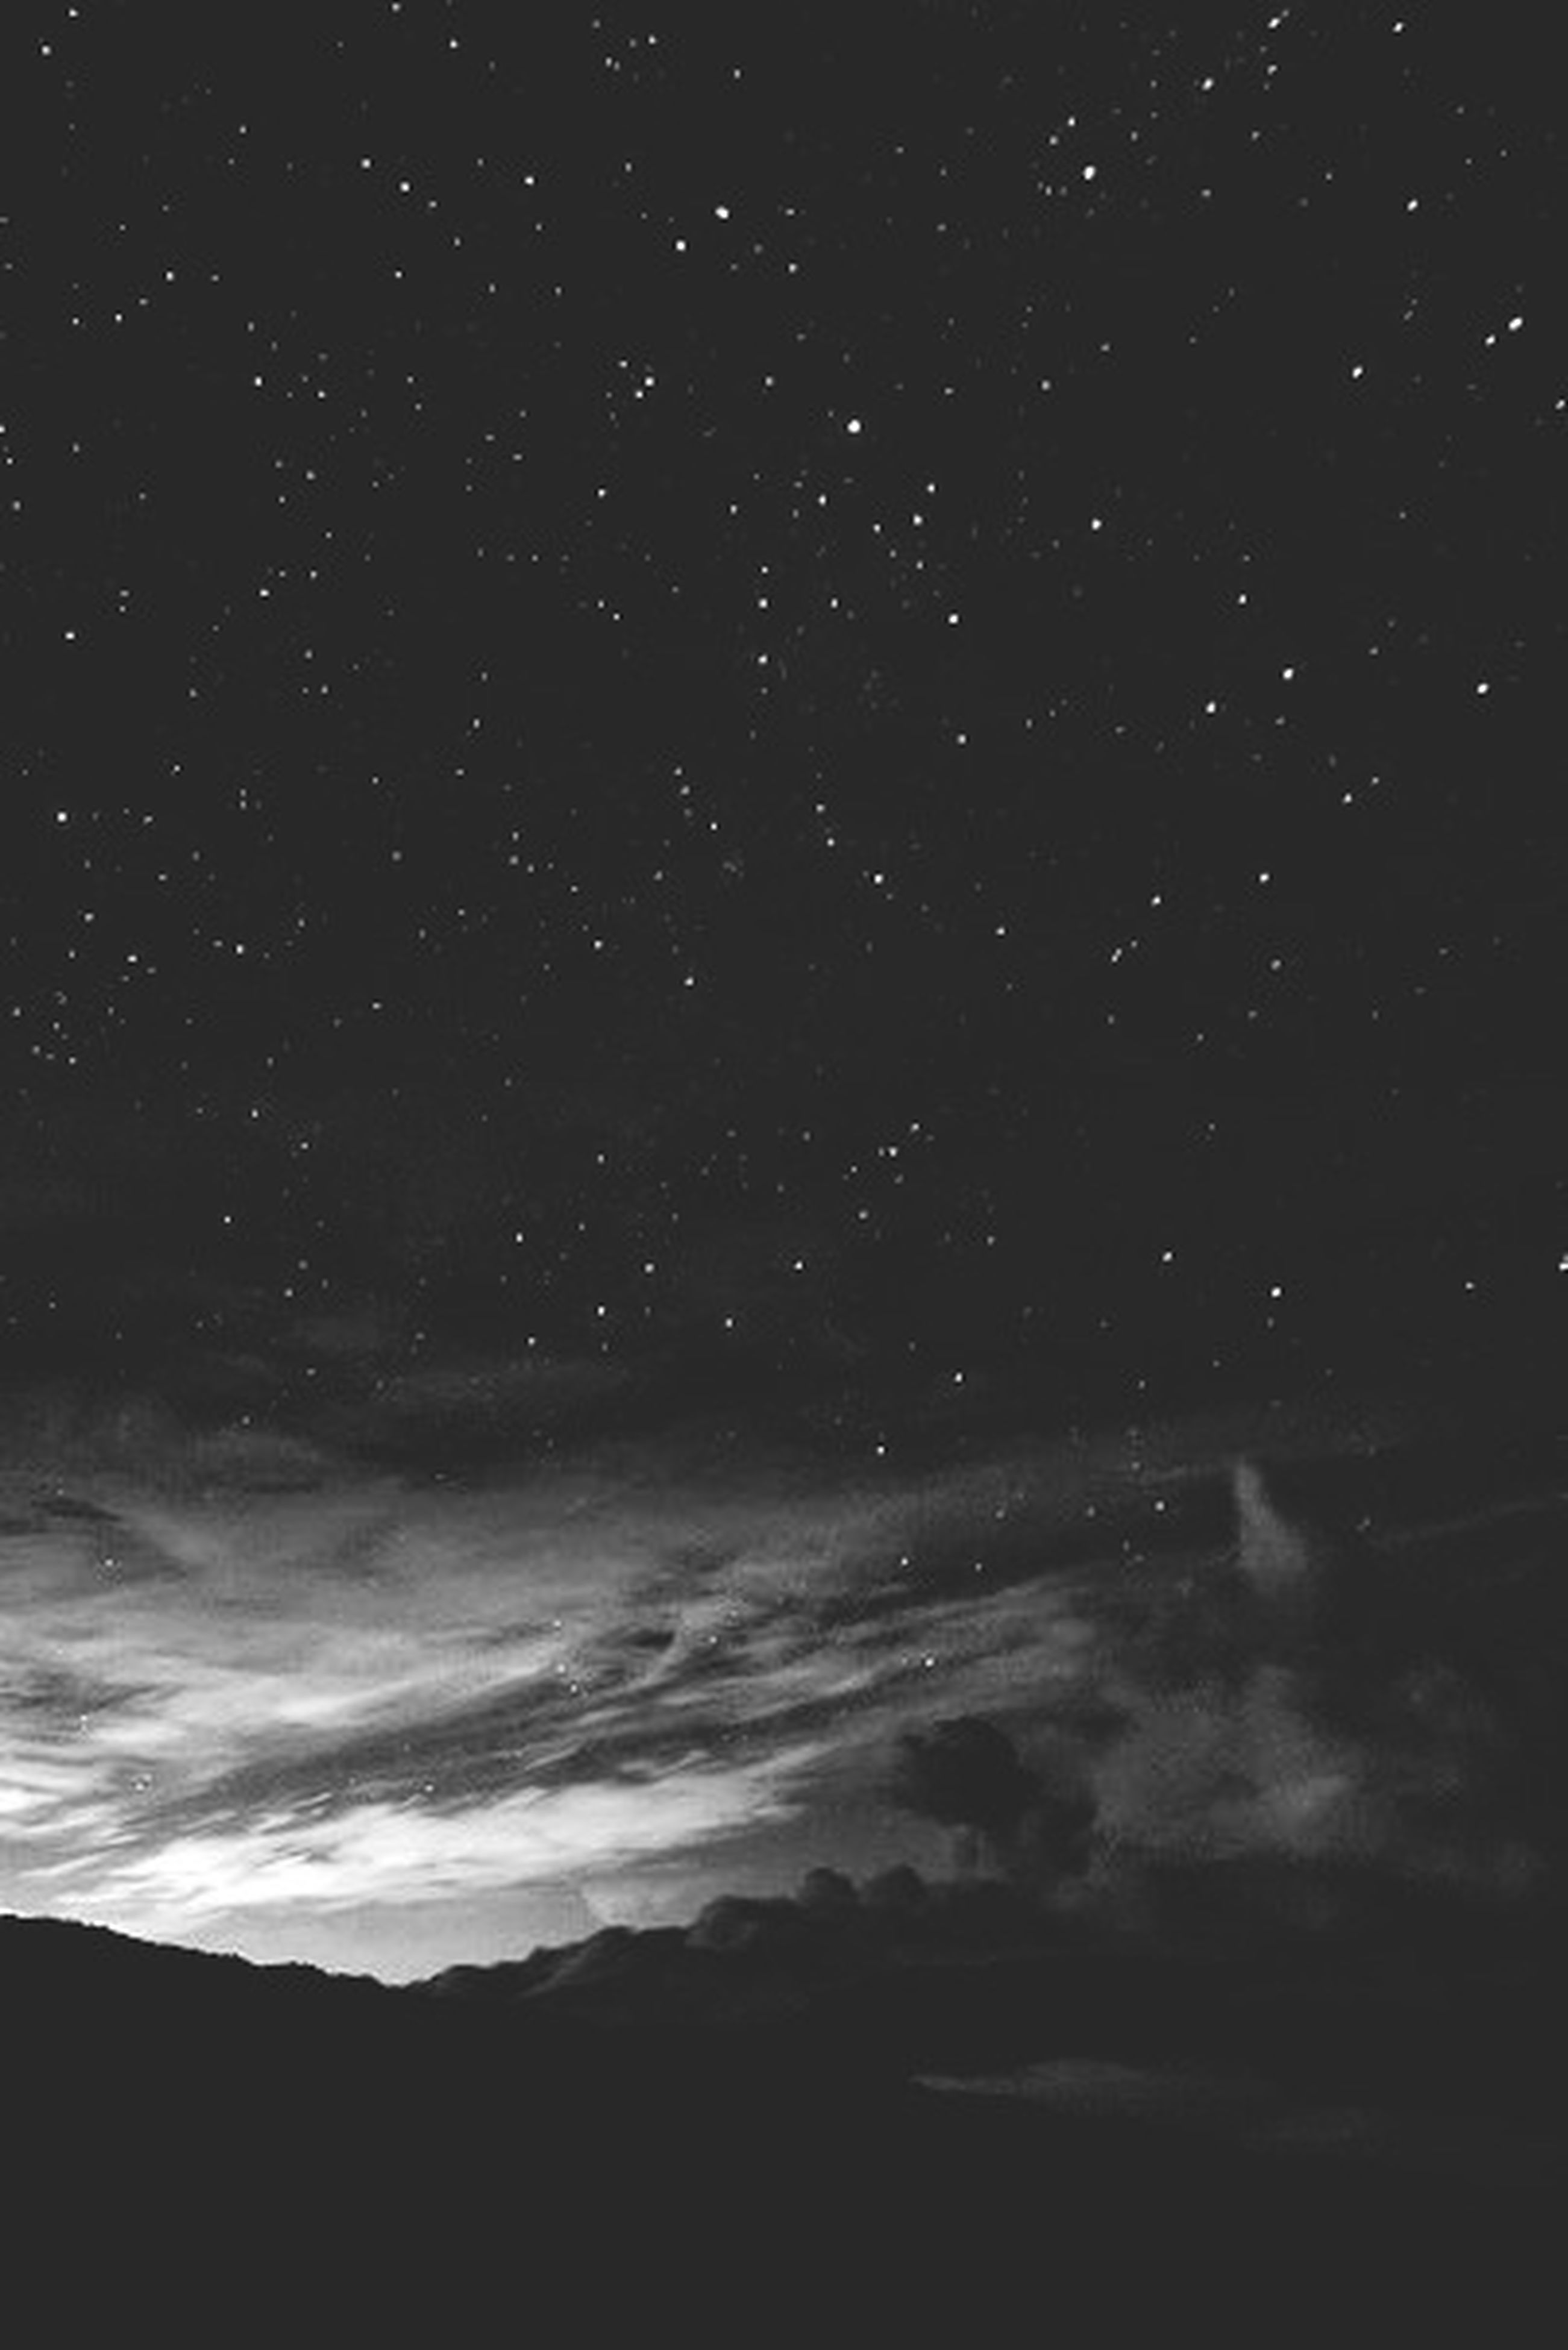 night, star - space, scenics, beauty in nature, star field, tranquil scene, tranquility, sky, astronomy, nature, dark, idyllic, star, illuminated, low angle view, galaxy, no people, outdoors, space, silhouette